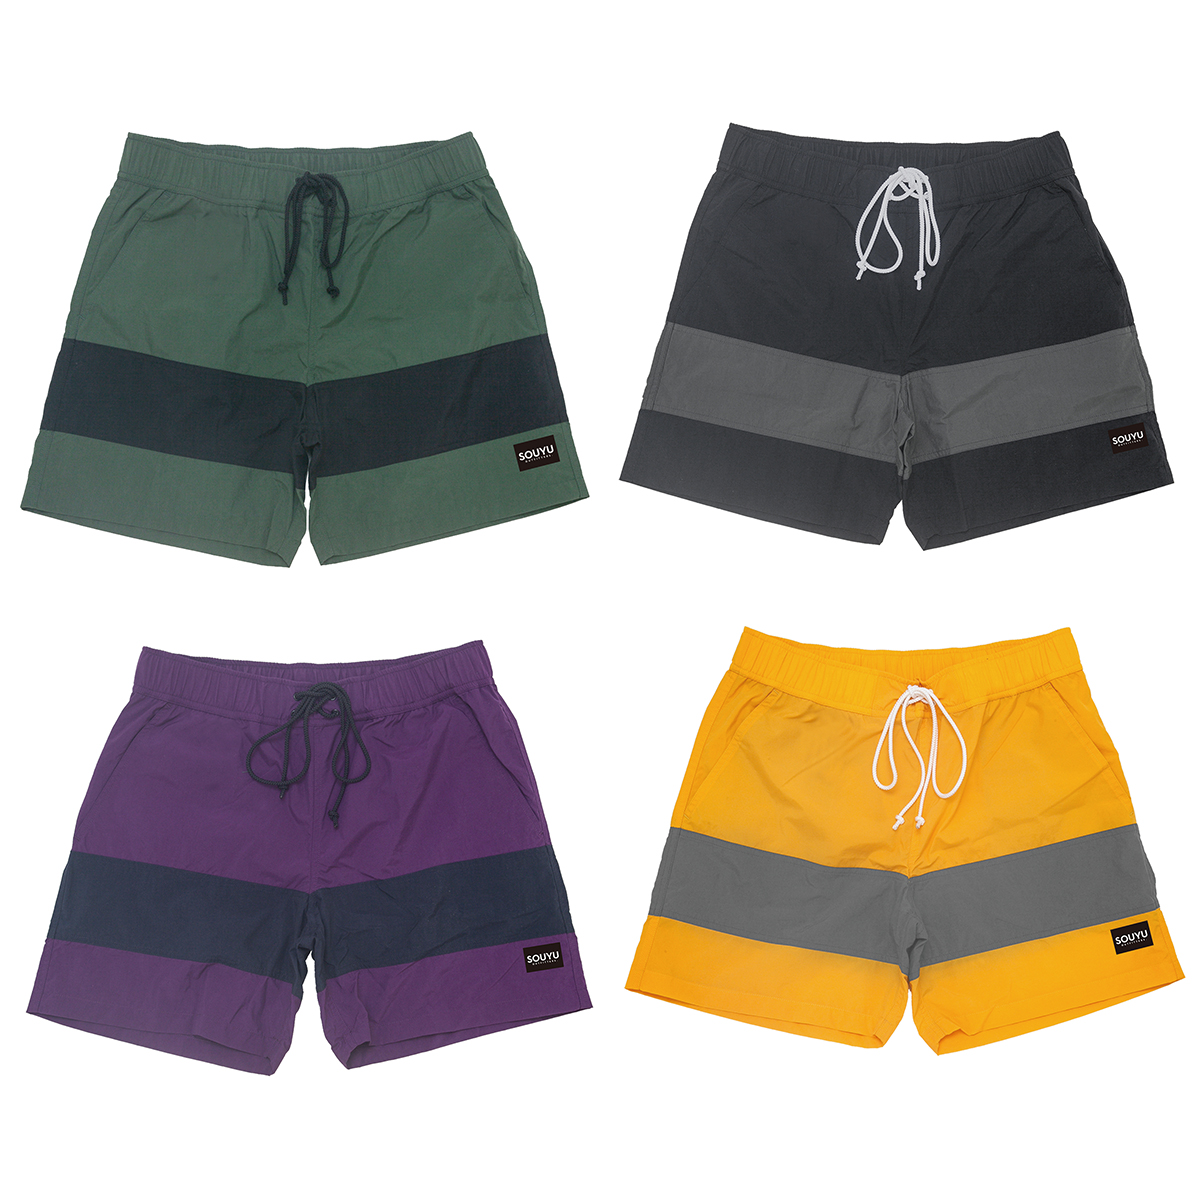 SURF VIBES SHORT サーフバイブスショーツ Number : s20-so-08 Fabric :Nylon 100% Size : XS, S, M, L, XL Color:Olive × Black, Black × Gray, Purple × Navy, Yellow × Gray Price : ¥11,800